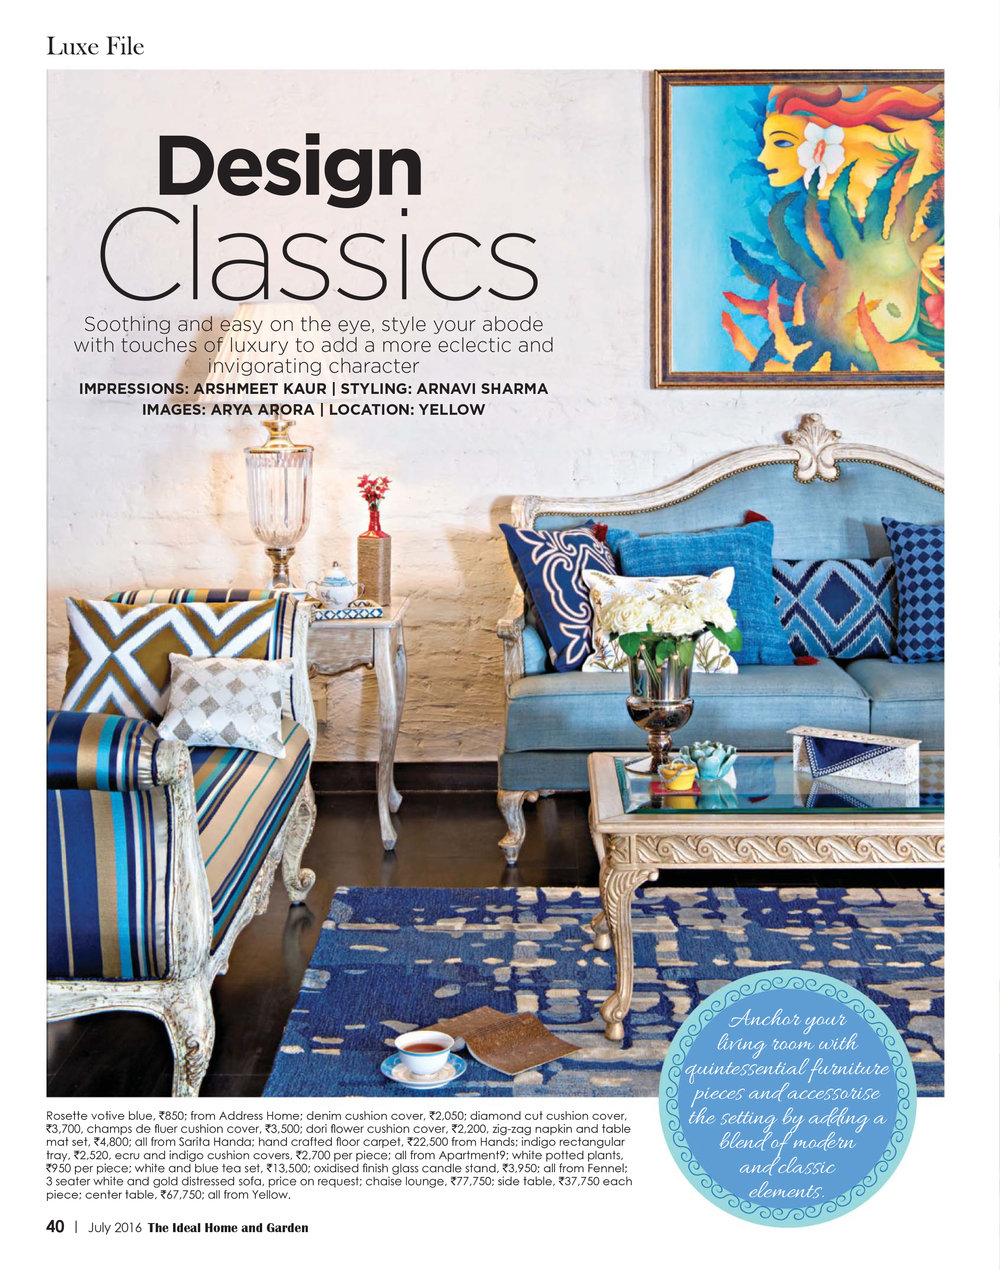 Ideal Homes - Design Classics